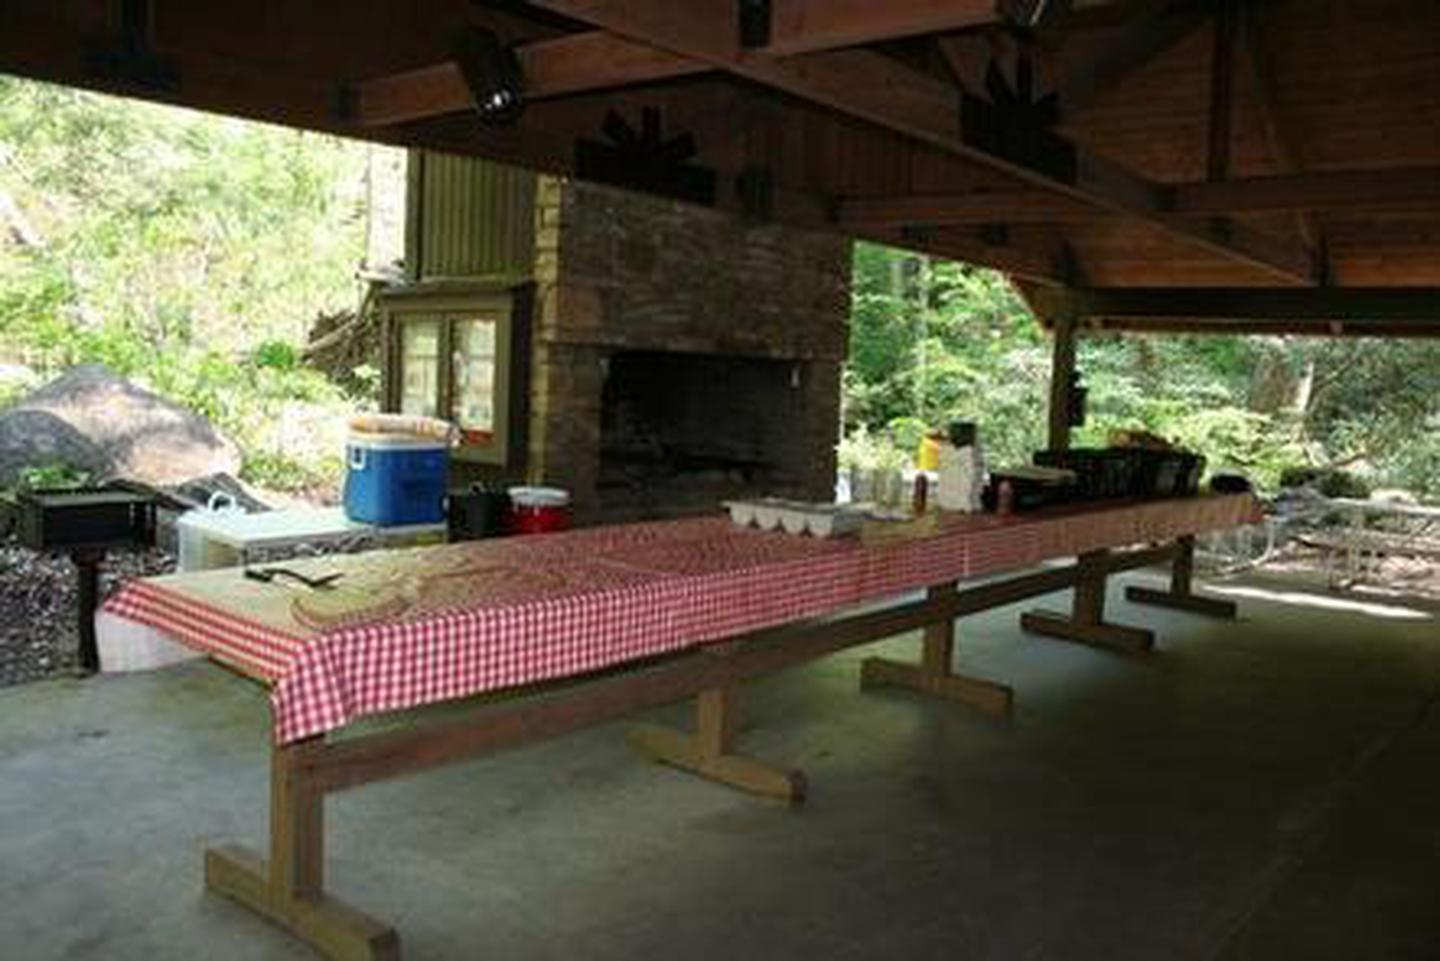 Twin Creek Picnic Pavilion Banquet table and fireplace grill